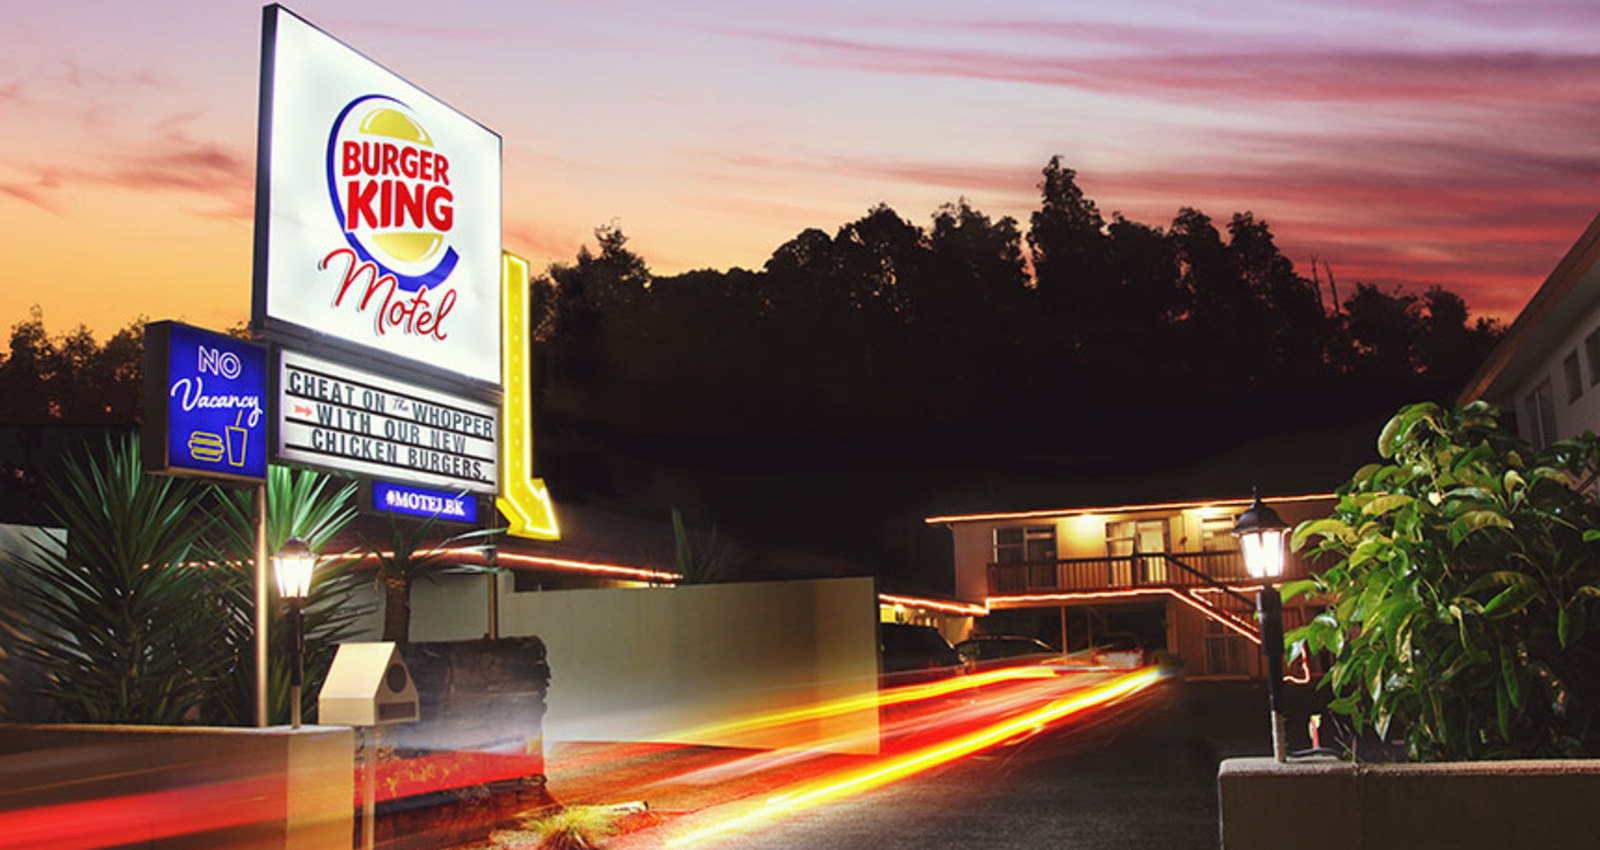 Motel Burger King